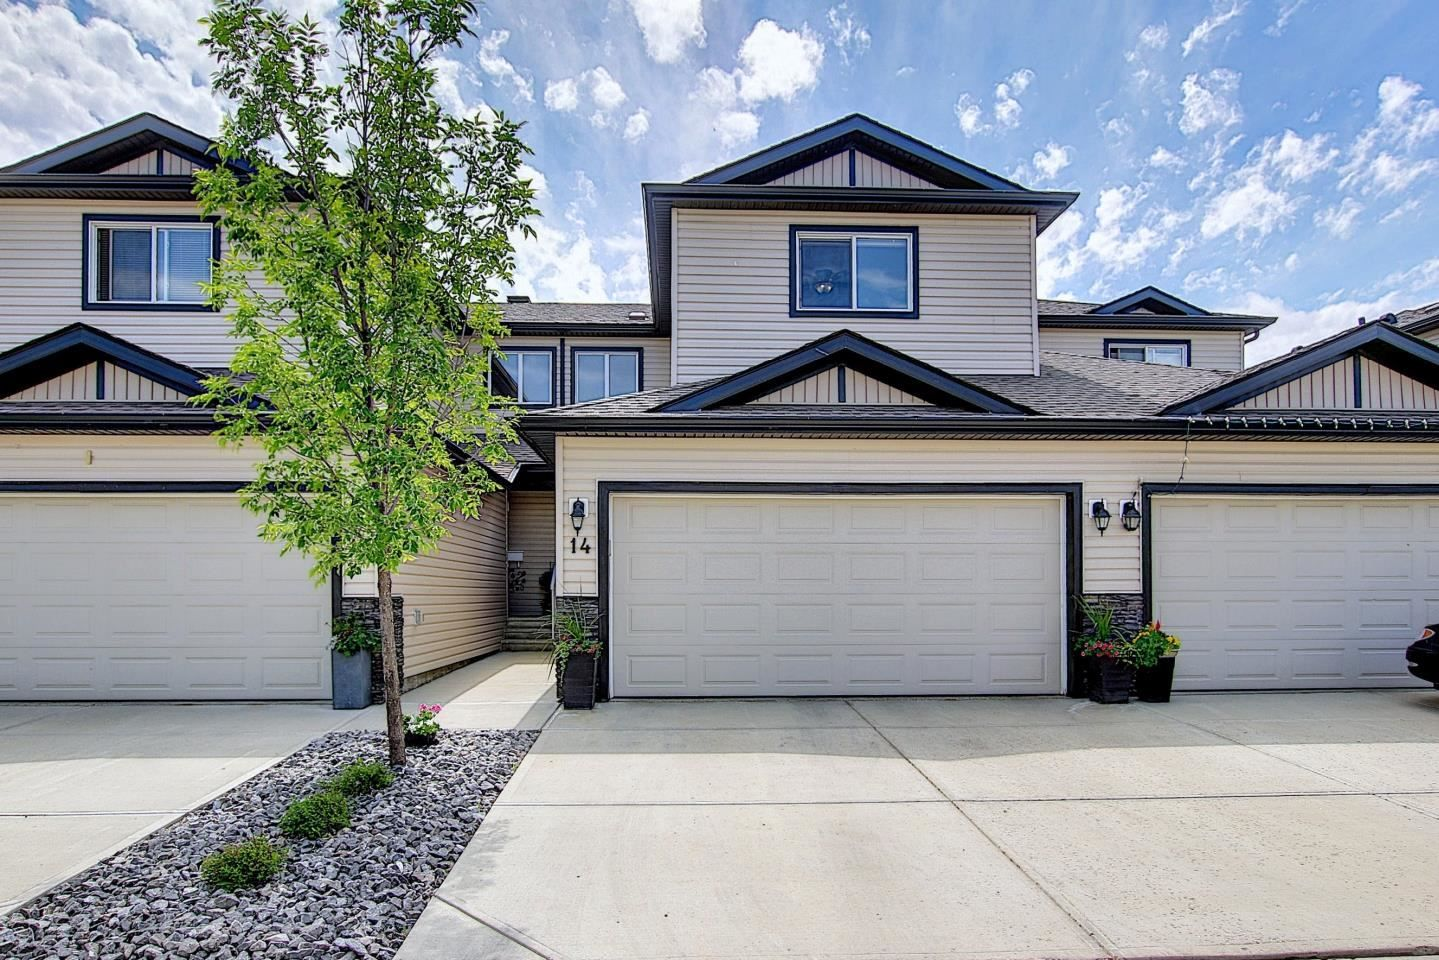 Main Photo: 14 445 Brintnell Boulevard in Edmonton: Zone 03 Townhouse for sale : MLS®# E4248531